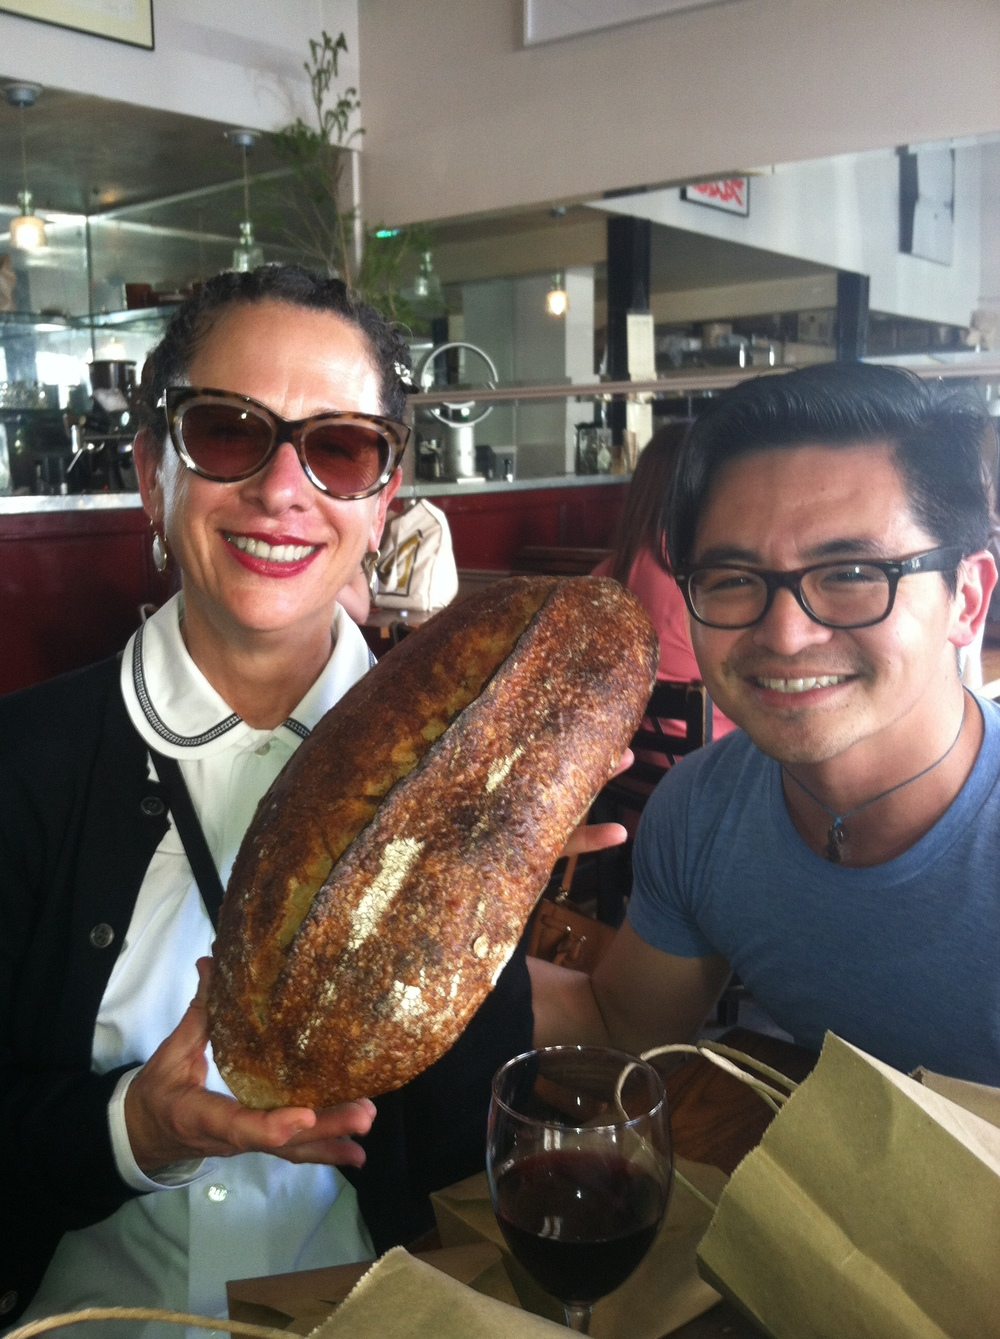 Nancy and Vinny Eng with the Country loaf. Sesame was gone.